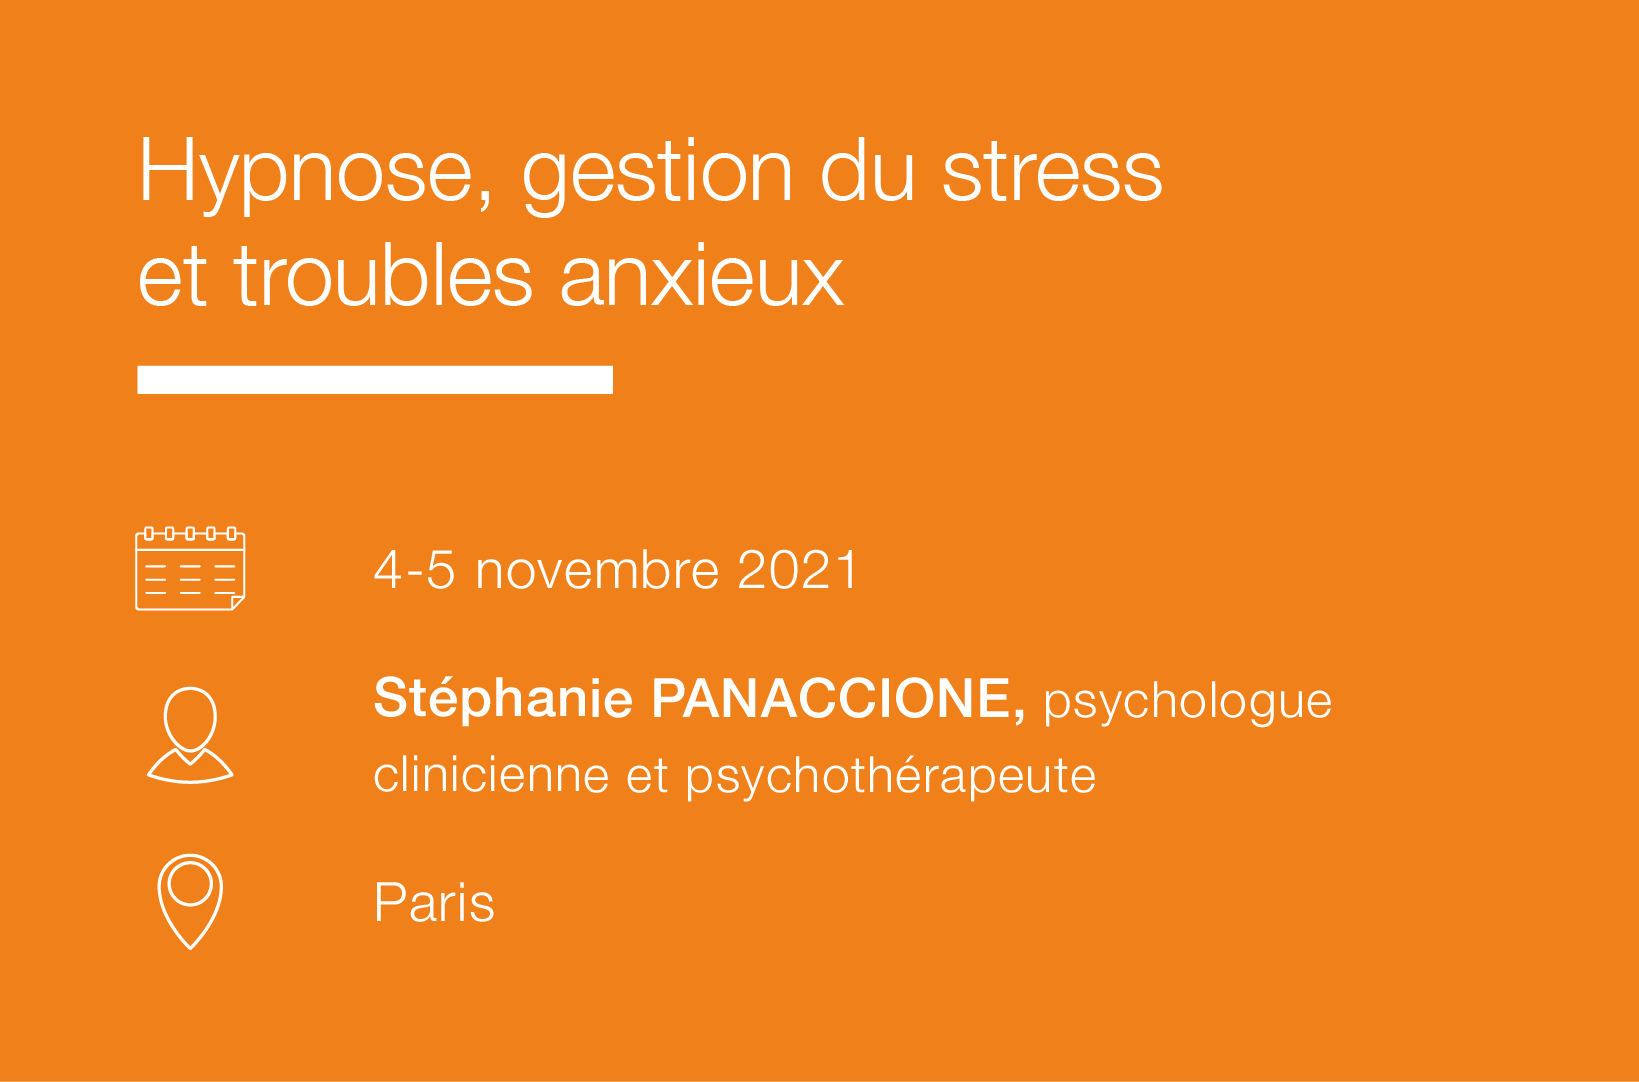 Seminaire Hypnose, Gestion du stress et Troubles anxieux IFH